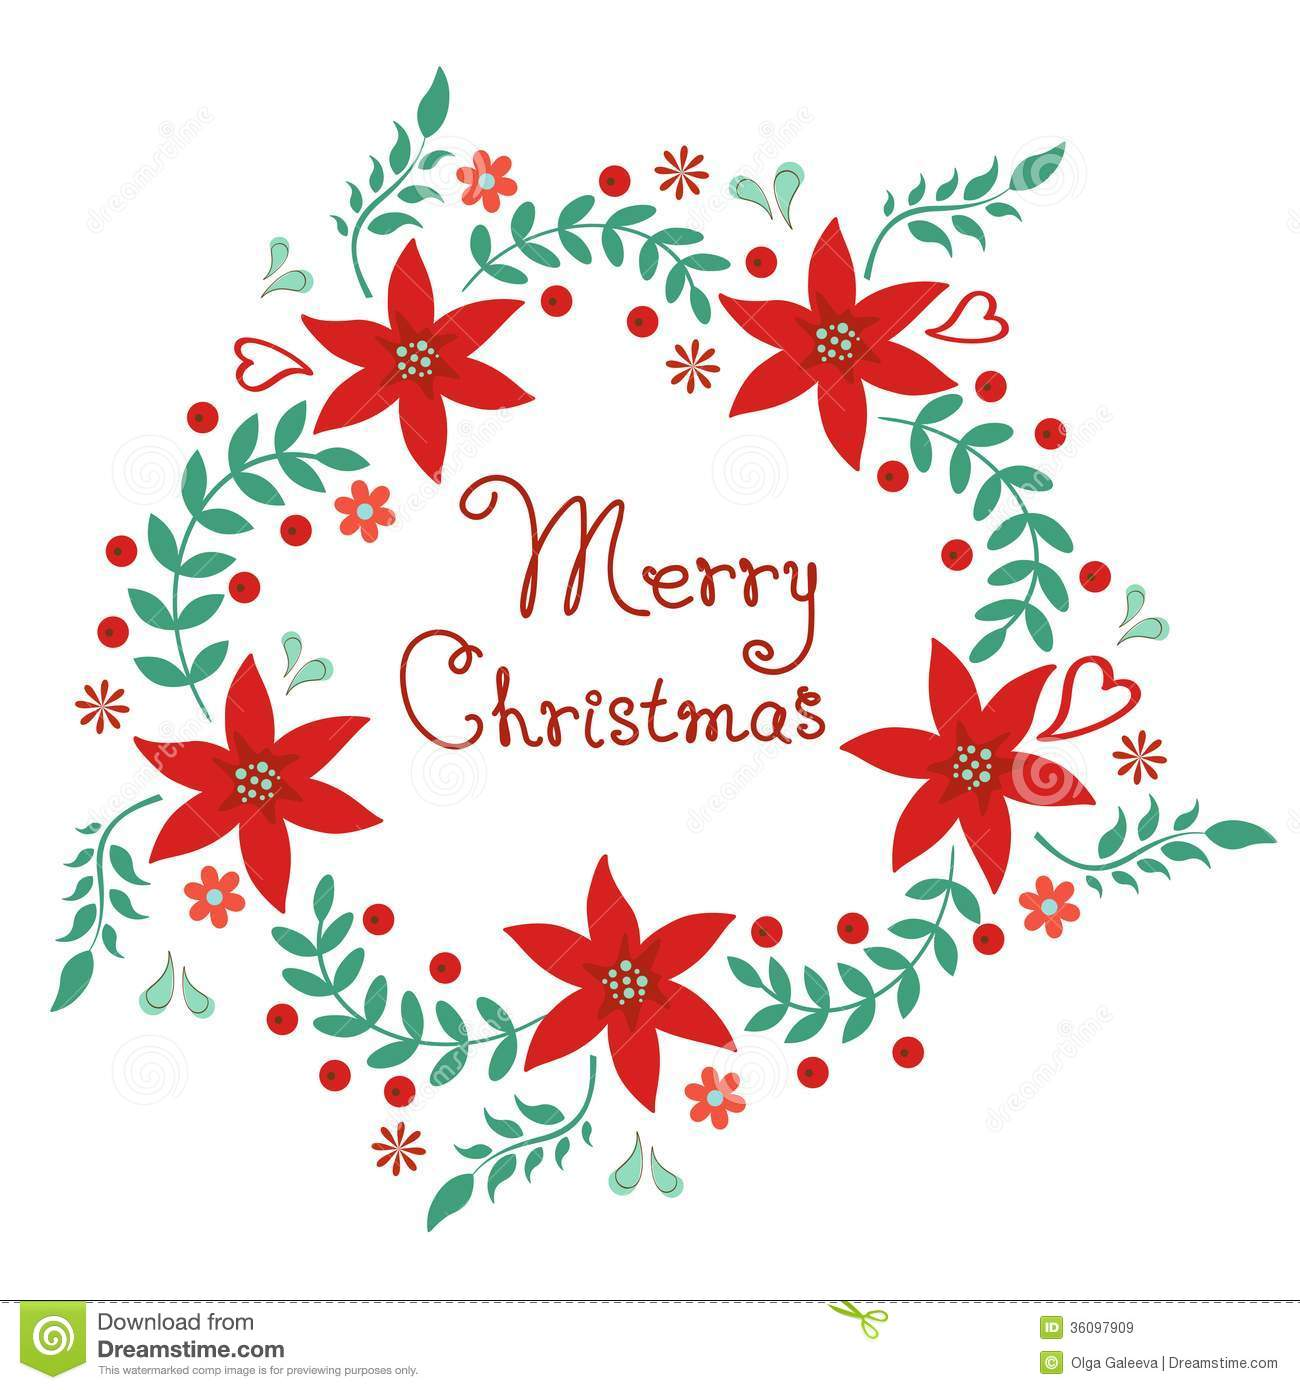 Christmas Flower Line Drawing : Merry christmas floral wreath stock vector illustration